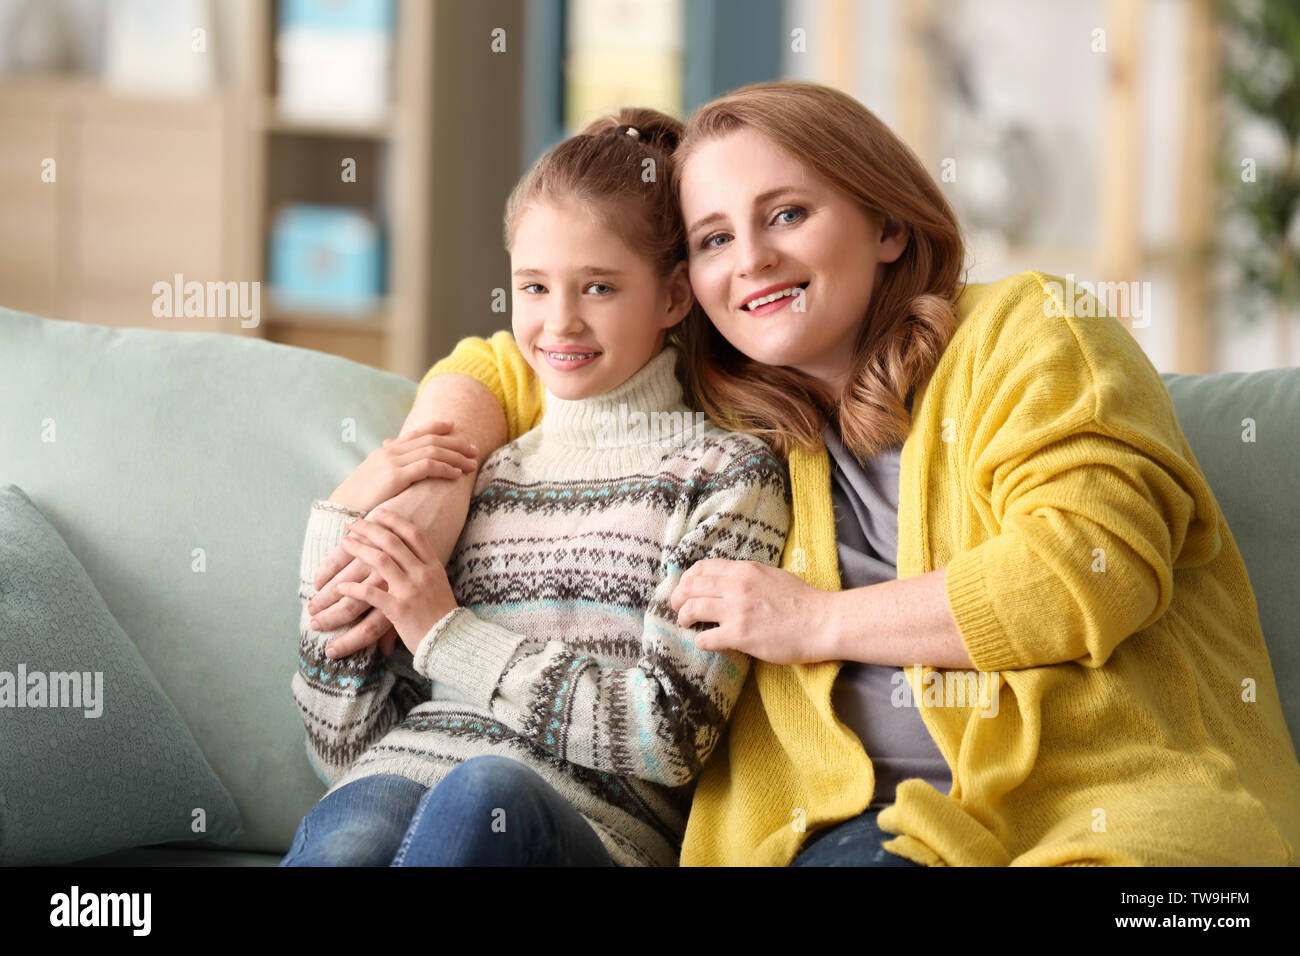 Portrait of happy mother and daughter at home - Stock Image